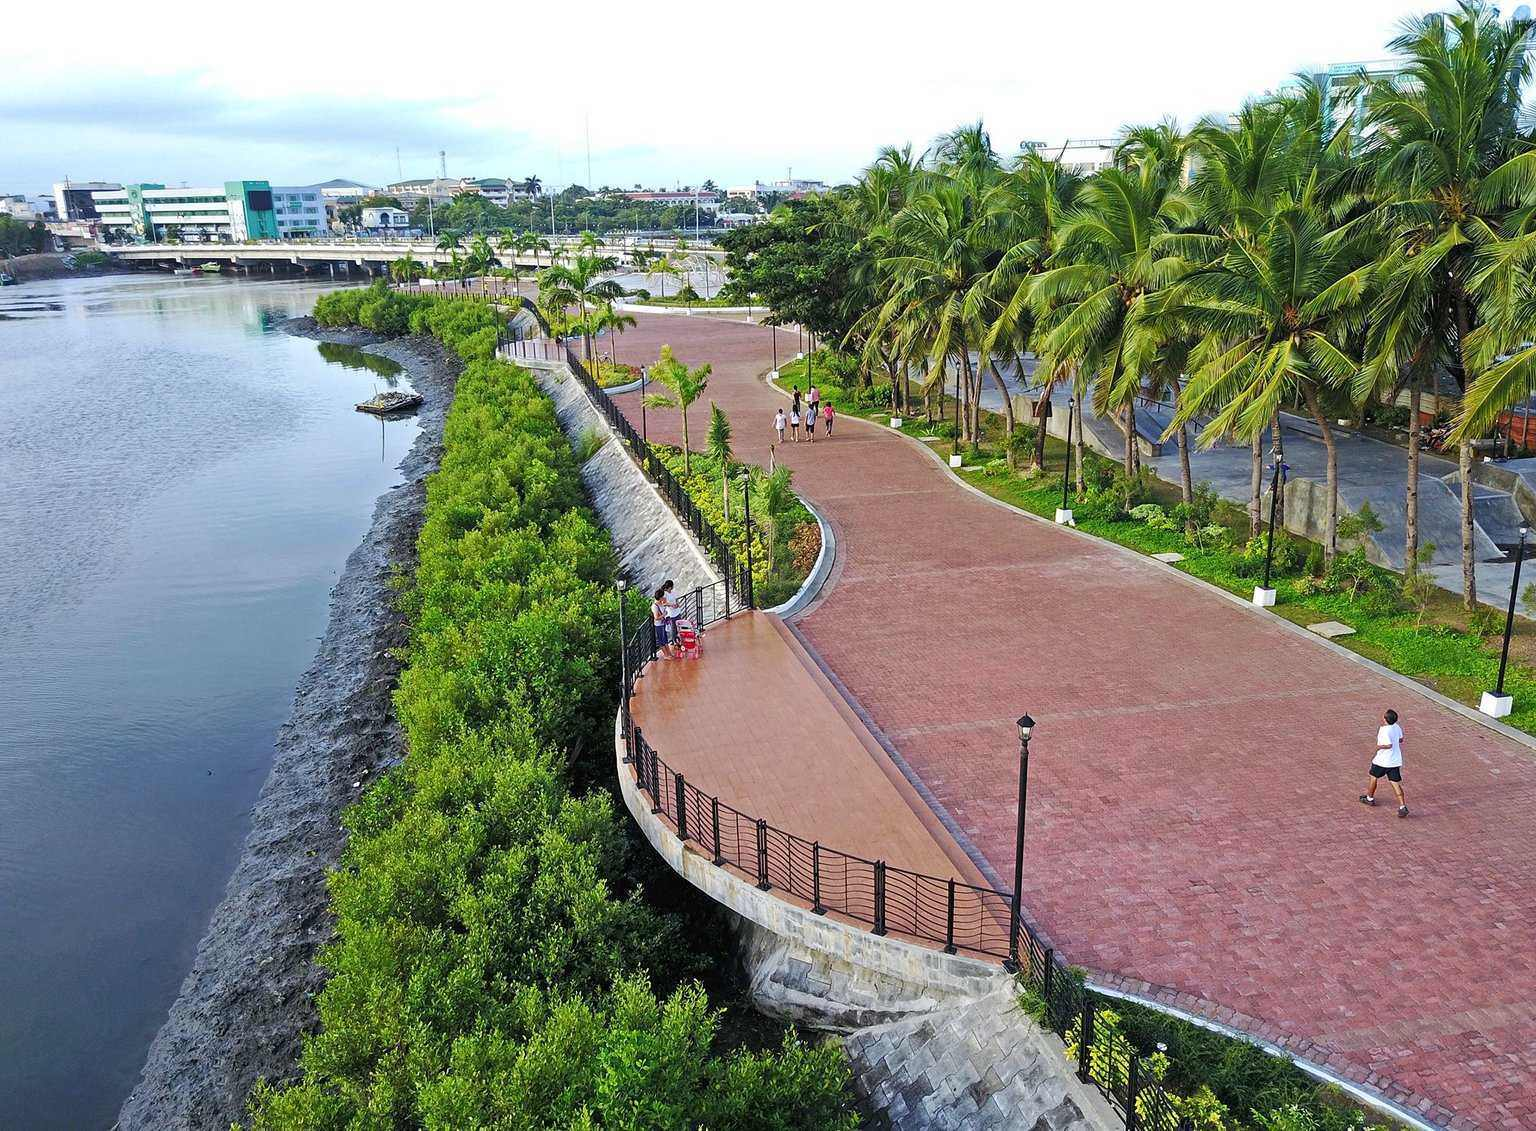 ESPLANADE. Designed by celebrated Filipino architect Paulo Alcazaren, the Esplanade was recently hailed a Haligi ng Dangal awardee for best landscape architecture by the National Commission for Culture and the Arts. Photo courtesy of Paulo Alcazaren